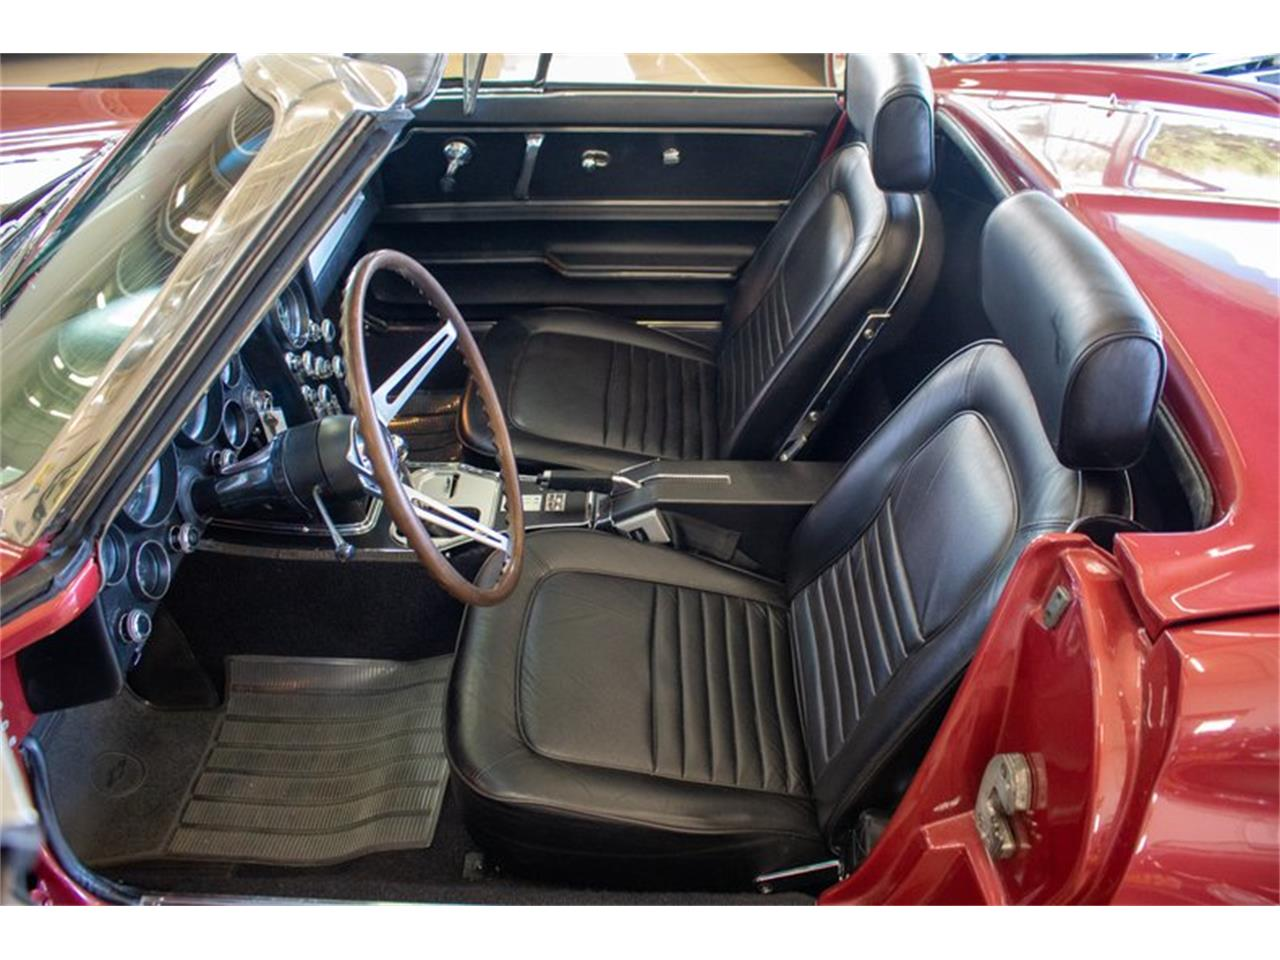 Large Picture of 1967 Chevrolet Corvette located in Maryland - $129,990.00 Offered by Flemings Ultimate Garage - QETF